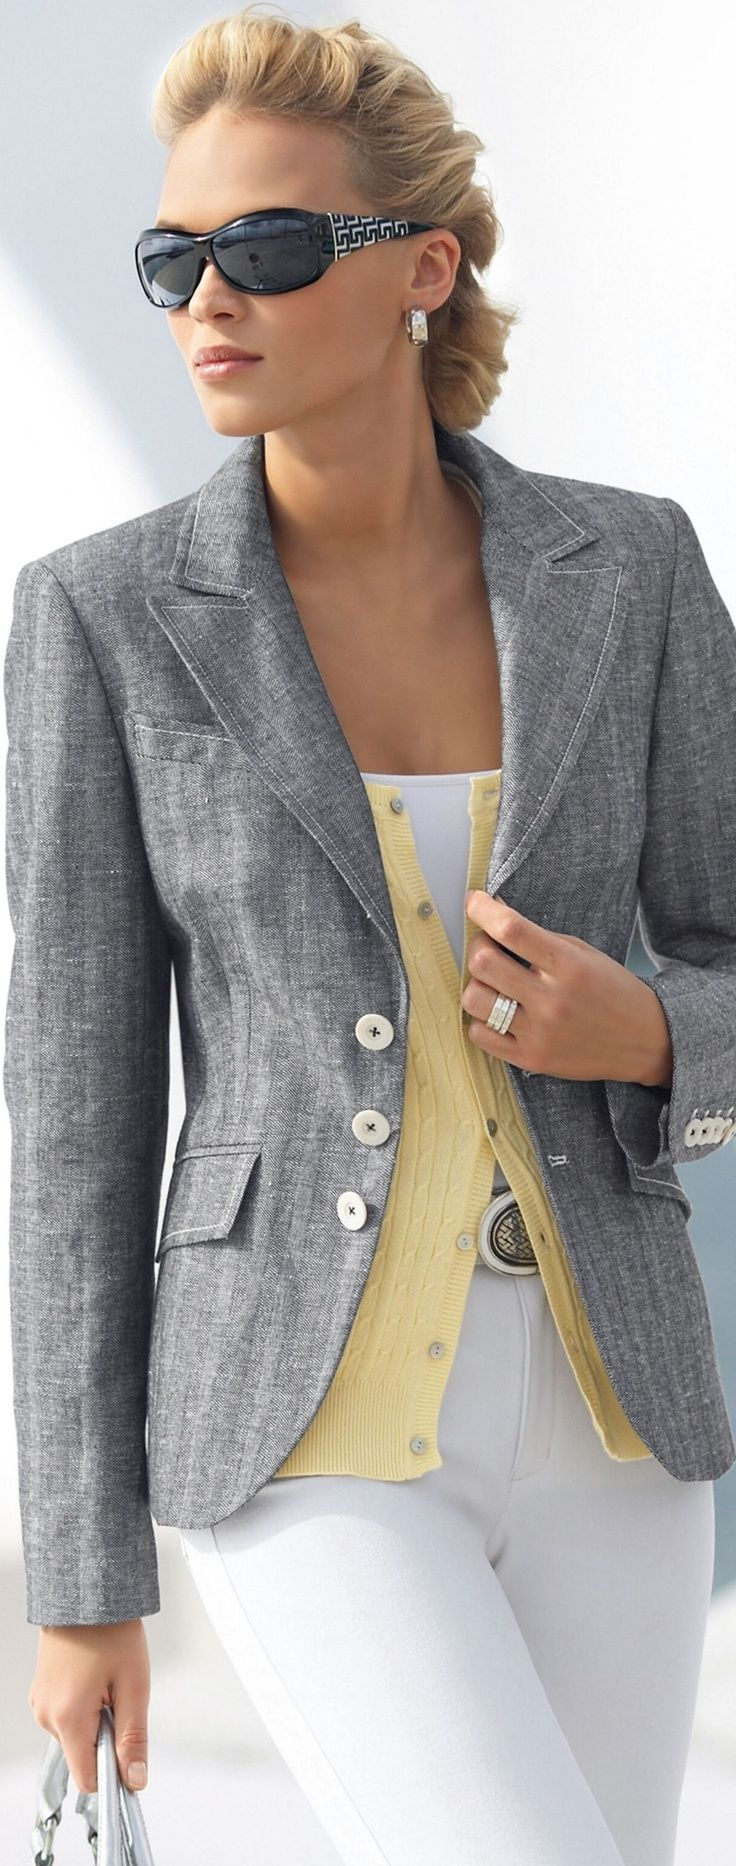 grey jacket & yellow cardi